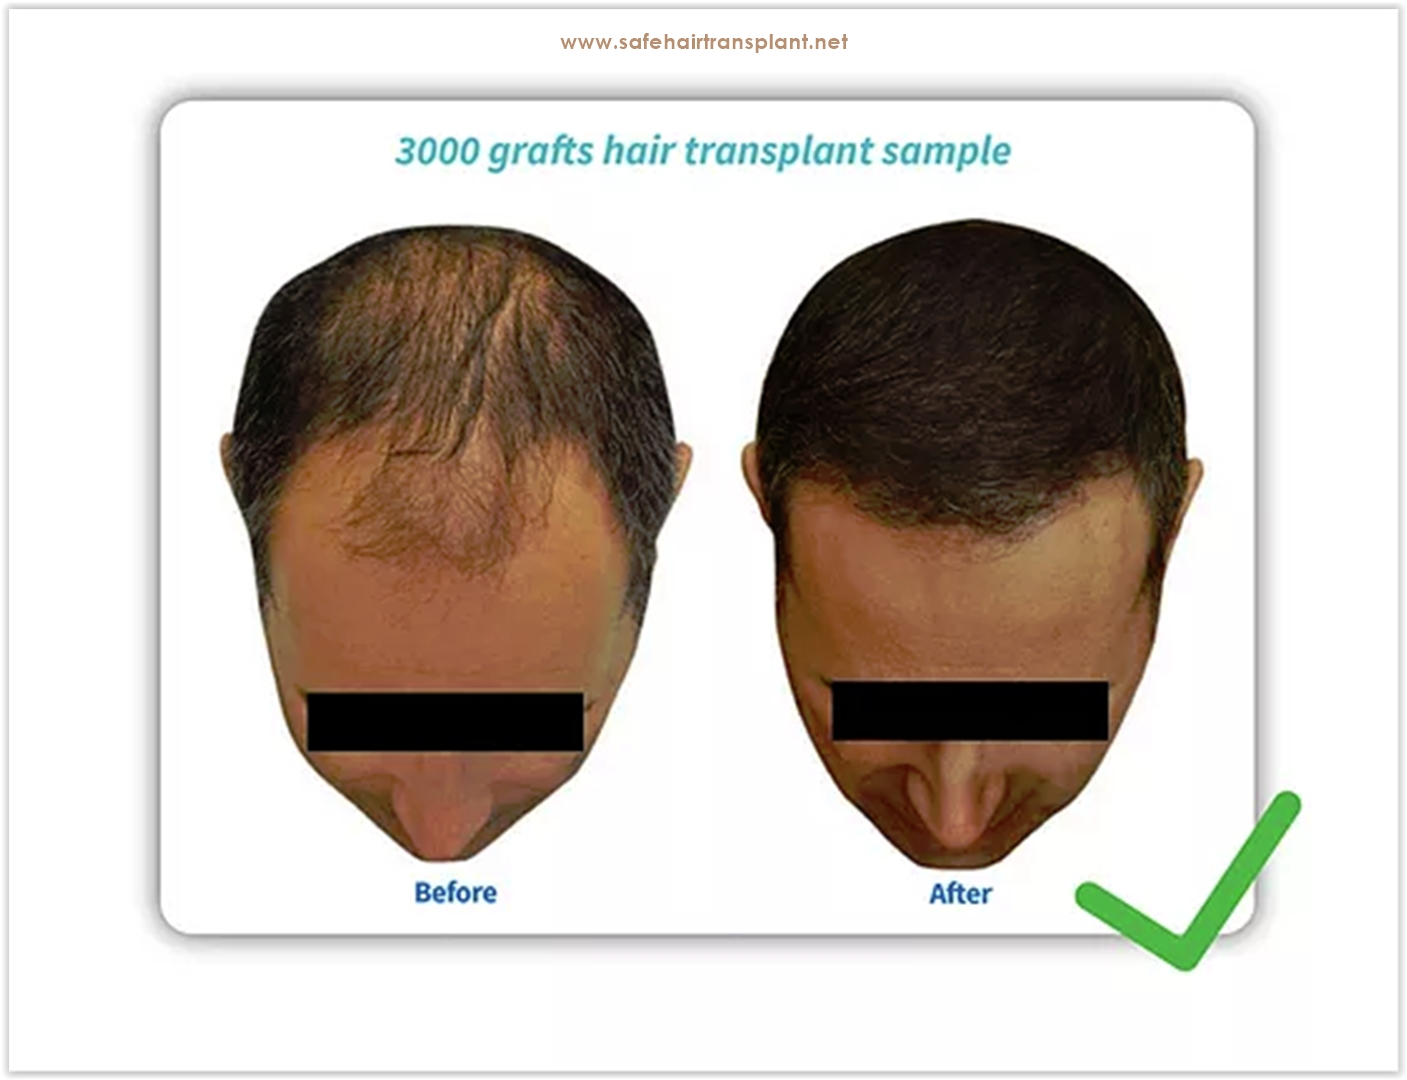 Hair transplantation Istanbul / Turkey current prices in June 2019